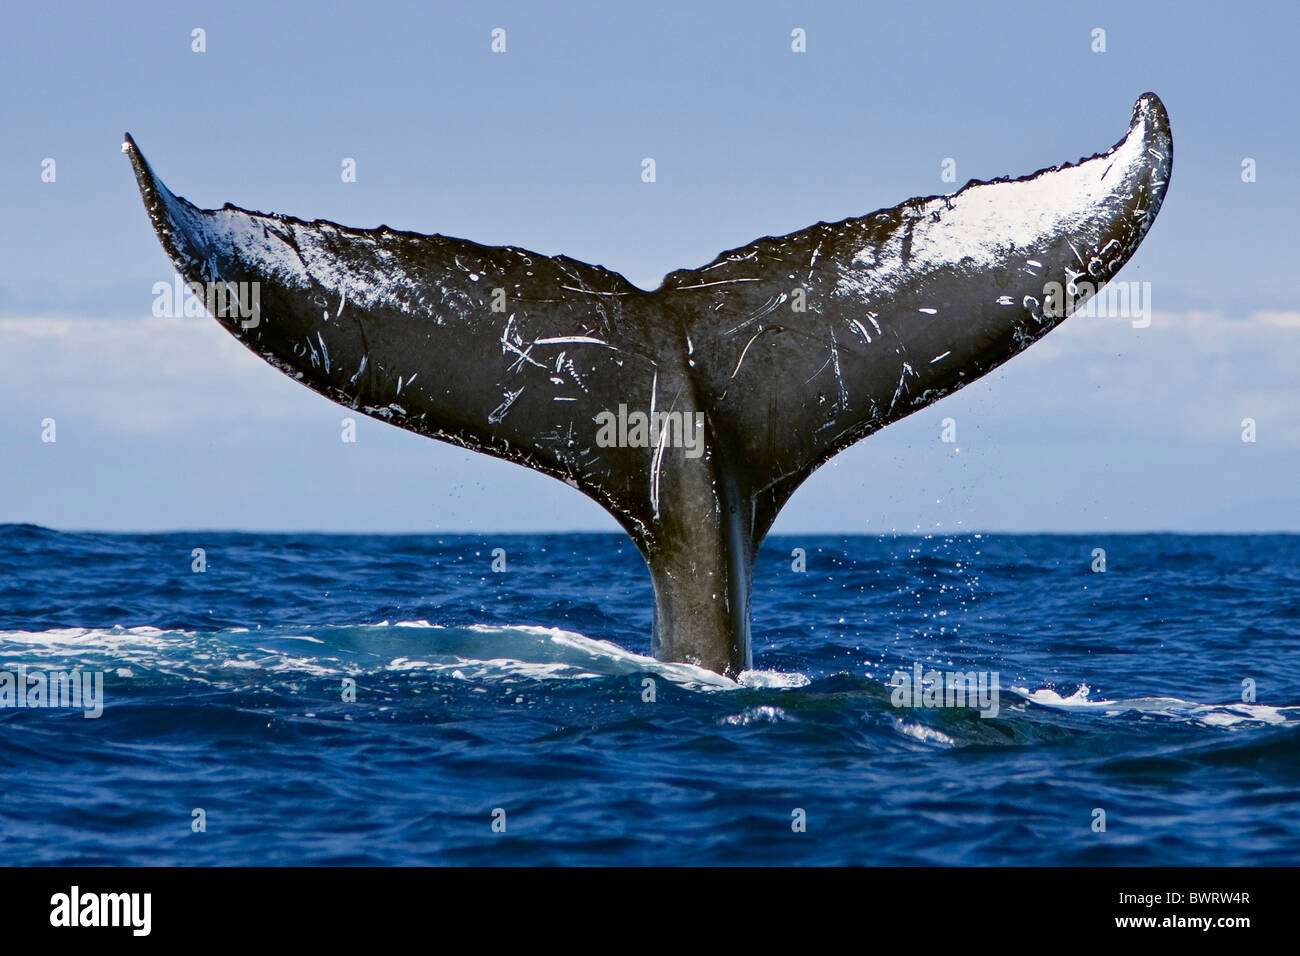 Humpback Whale Lobtailing or Tail Slapping Stock Photo